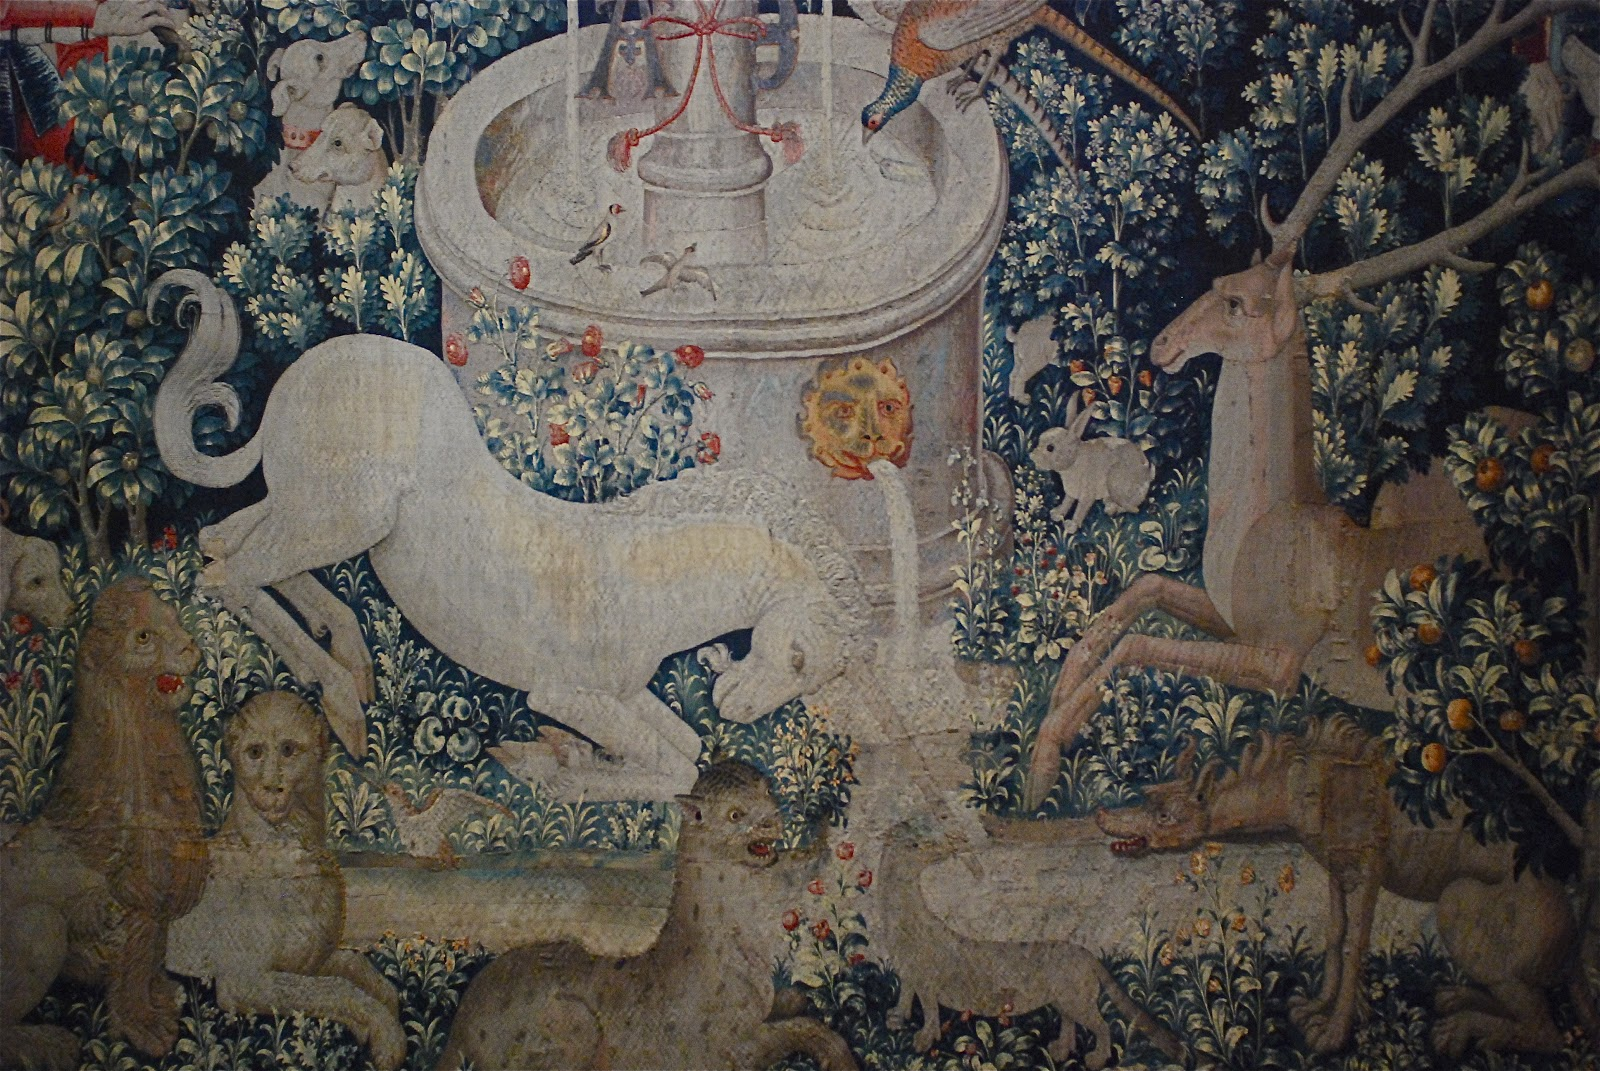 Worksheet Myth Of The Unicorn nyc the myth of unicorn tapestries at cloisters